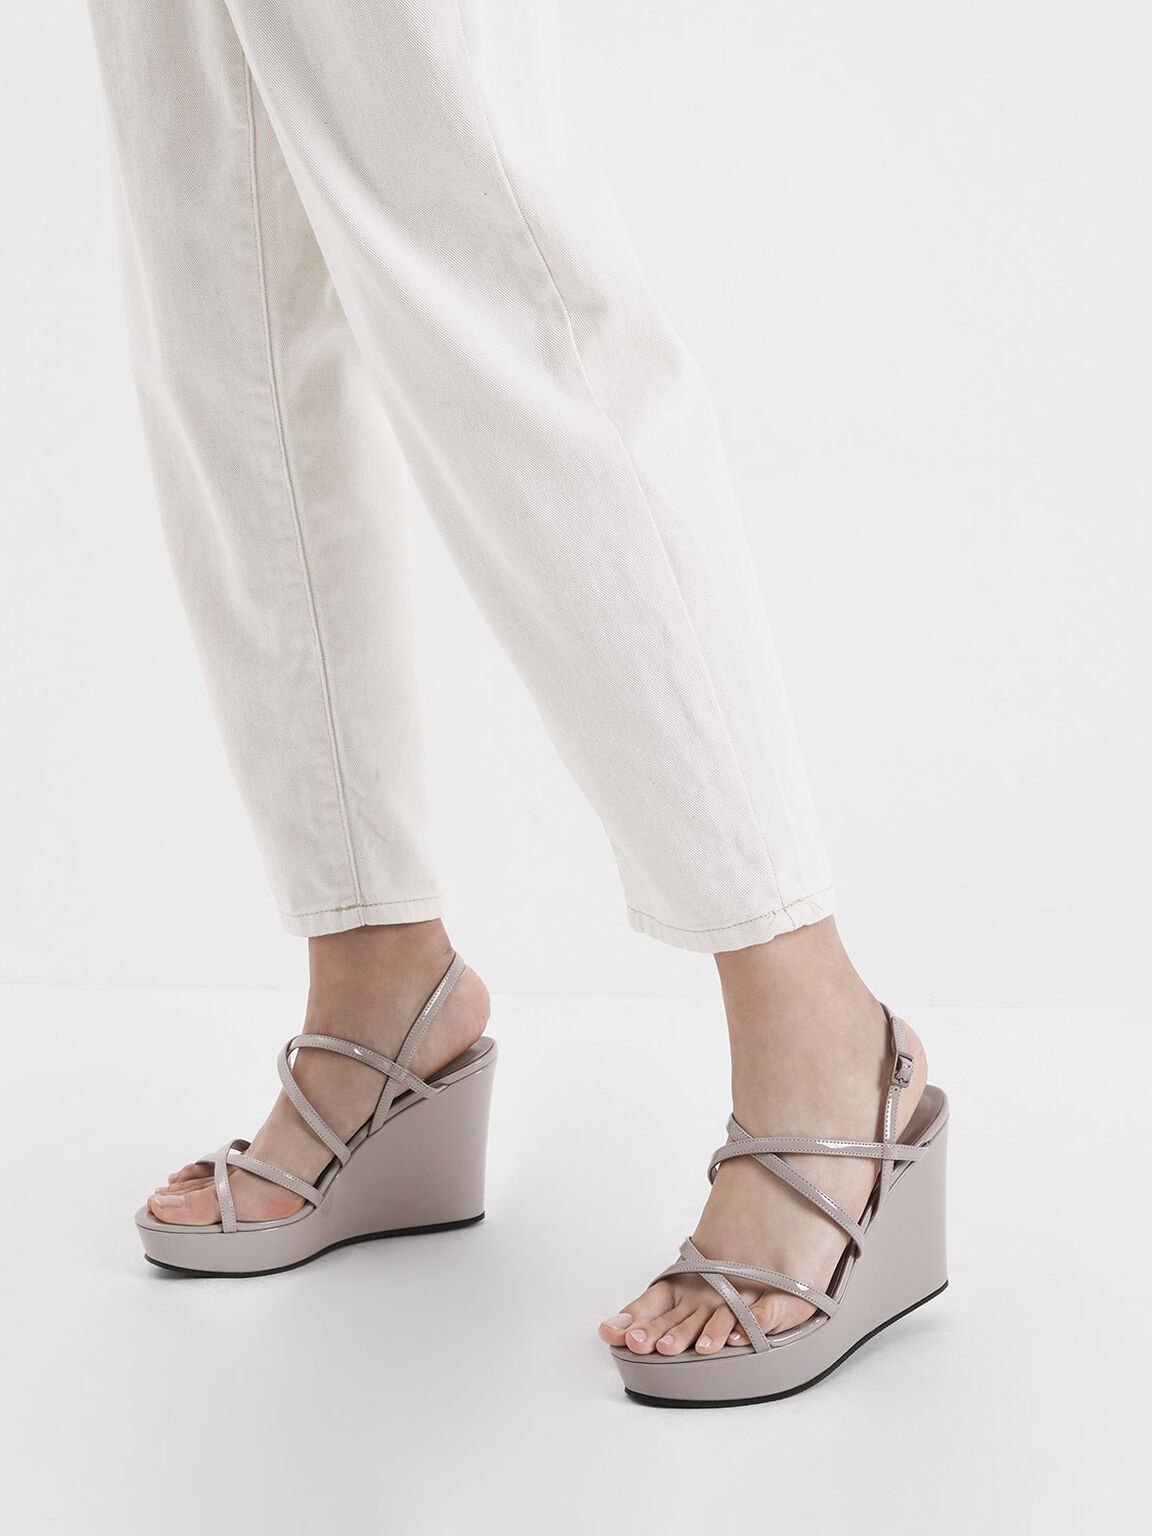 Patent Strappy Platform Wedges, Nude, hi-res